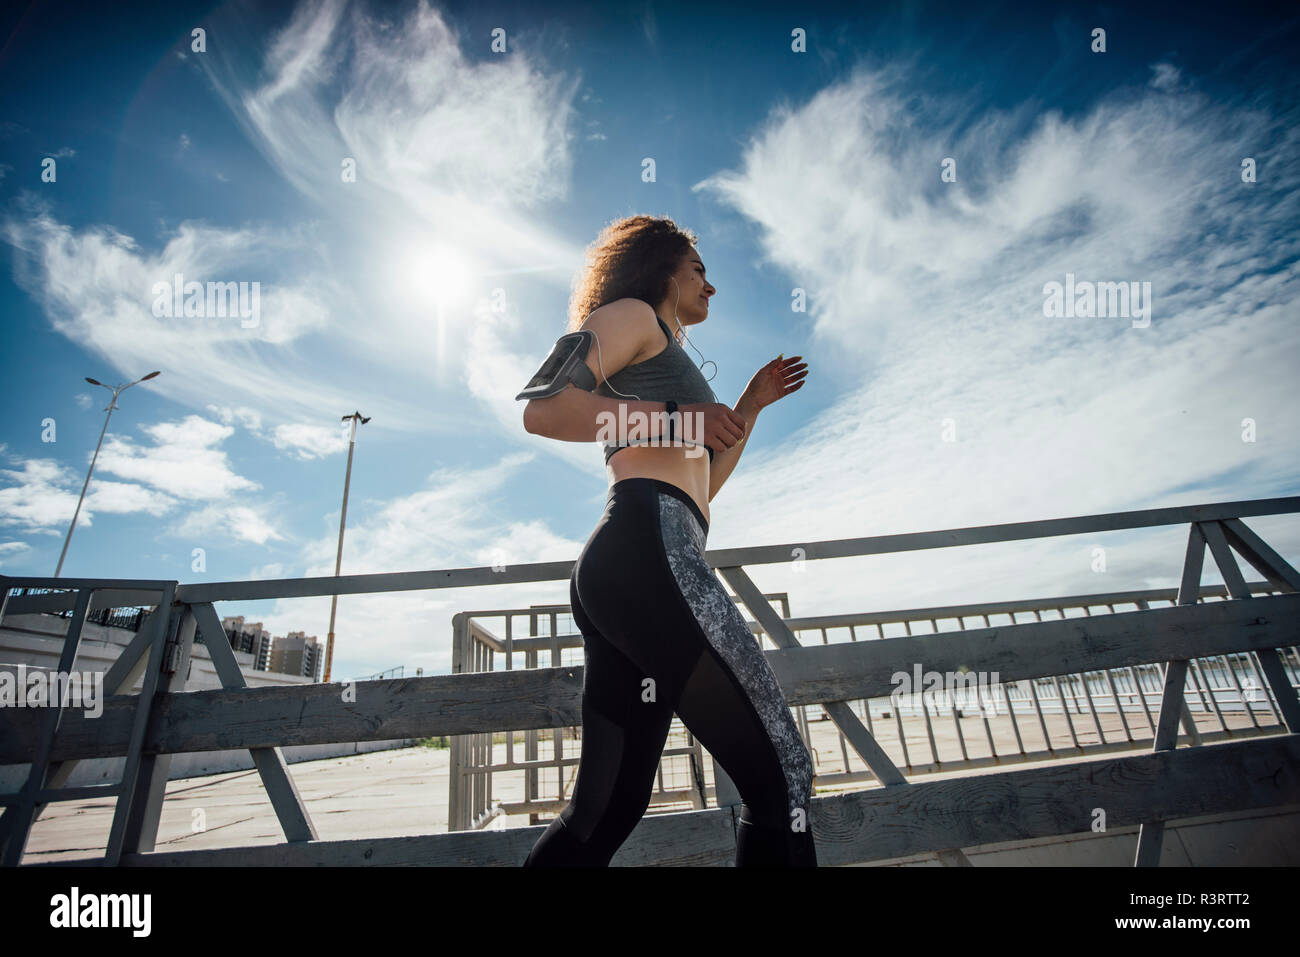 Young athletic woman running on a pier - Stock Image